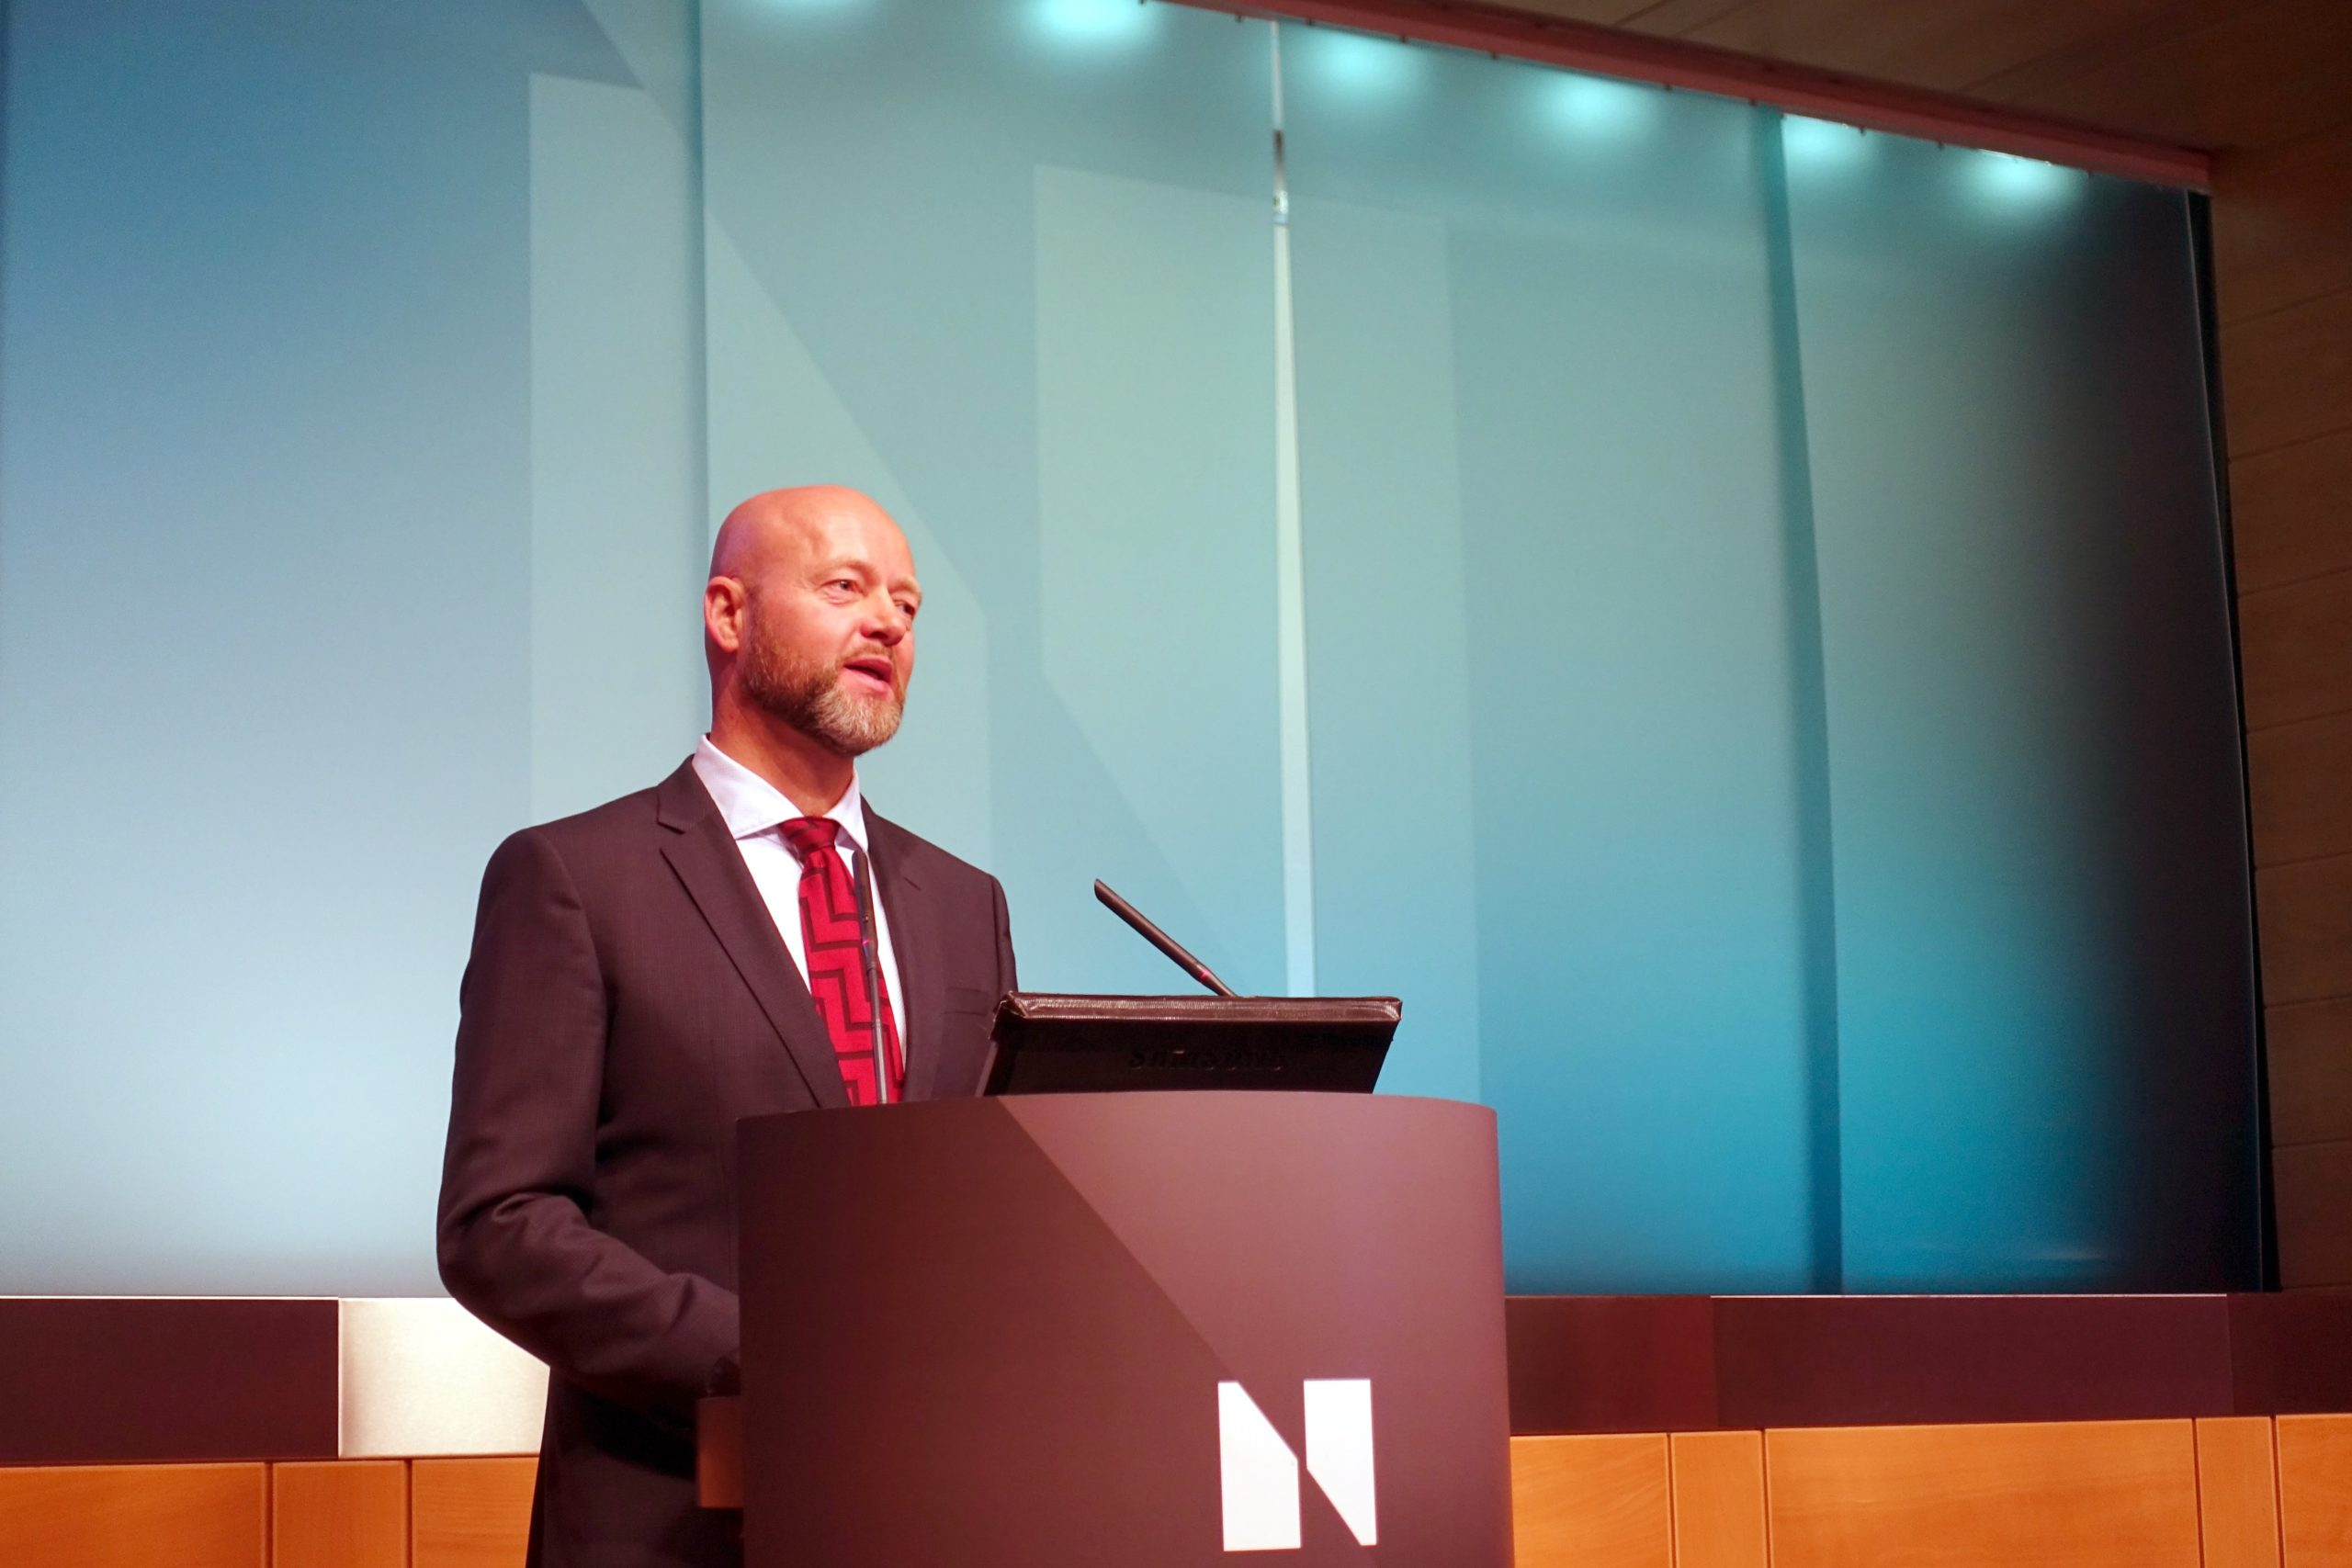 Photograph of someone speaking from a podium